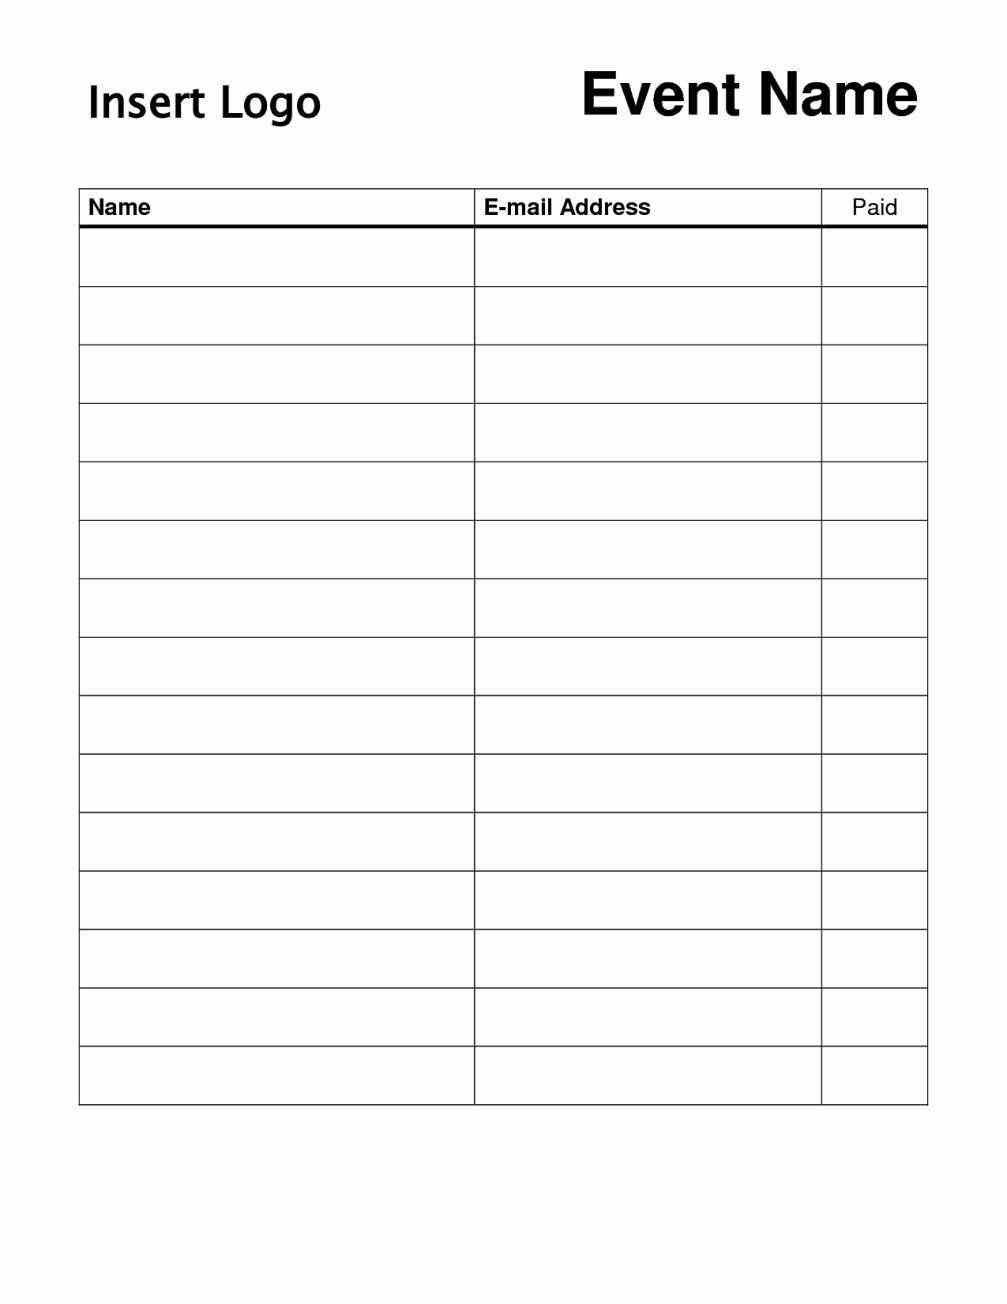 Can Use For With Sign Up Sheet Template Word Sample Signup Sheet